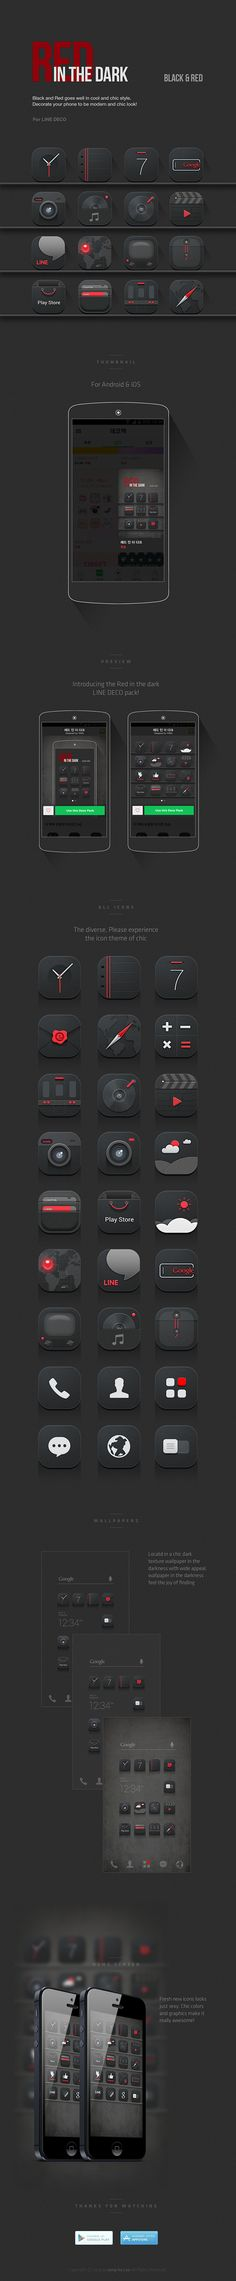 [NHN_CAMP MOBILE] Red in the dark icon set design on Behance